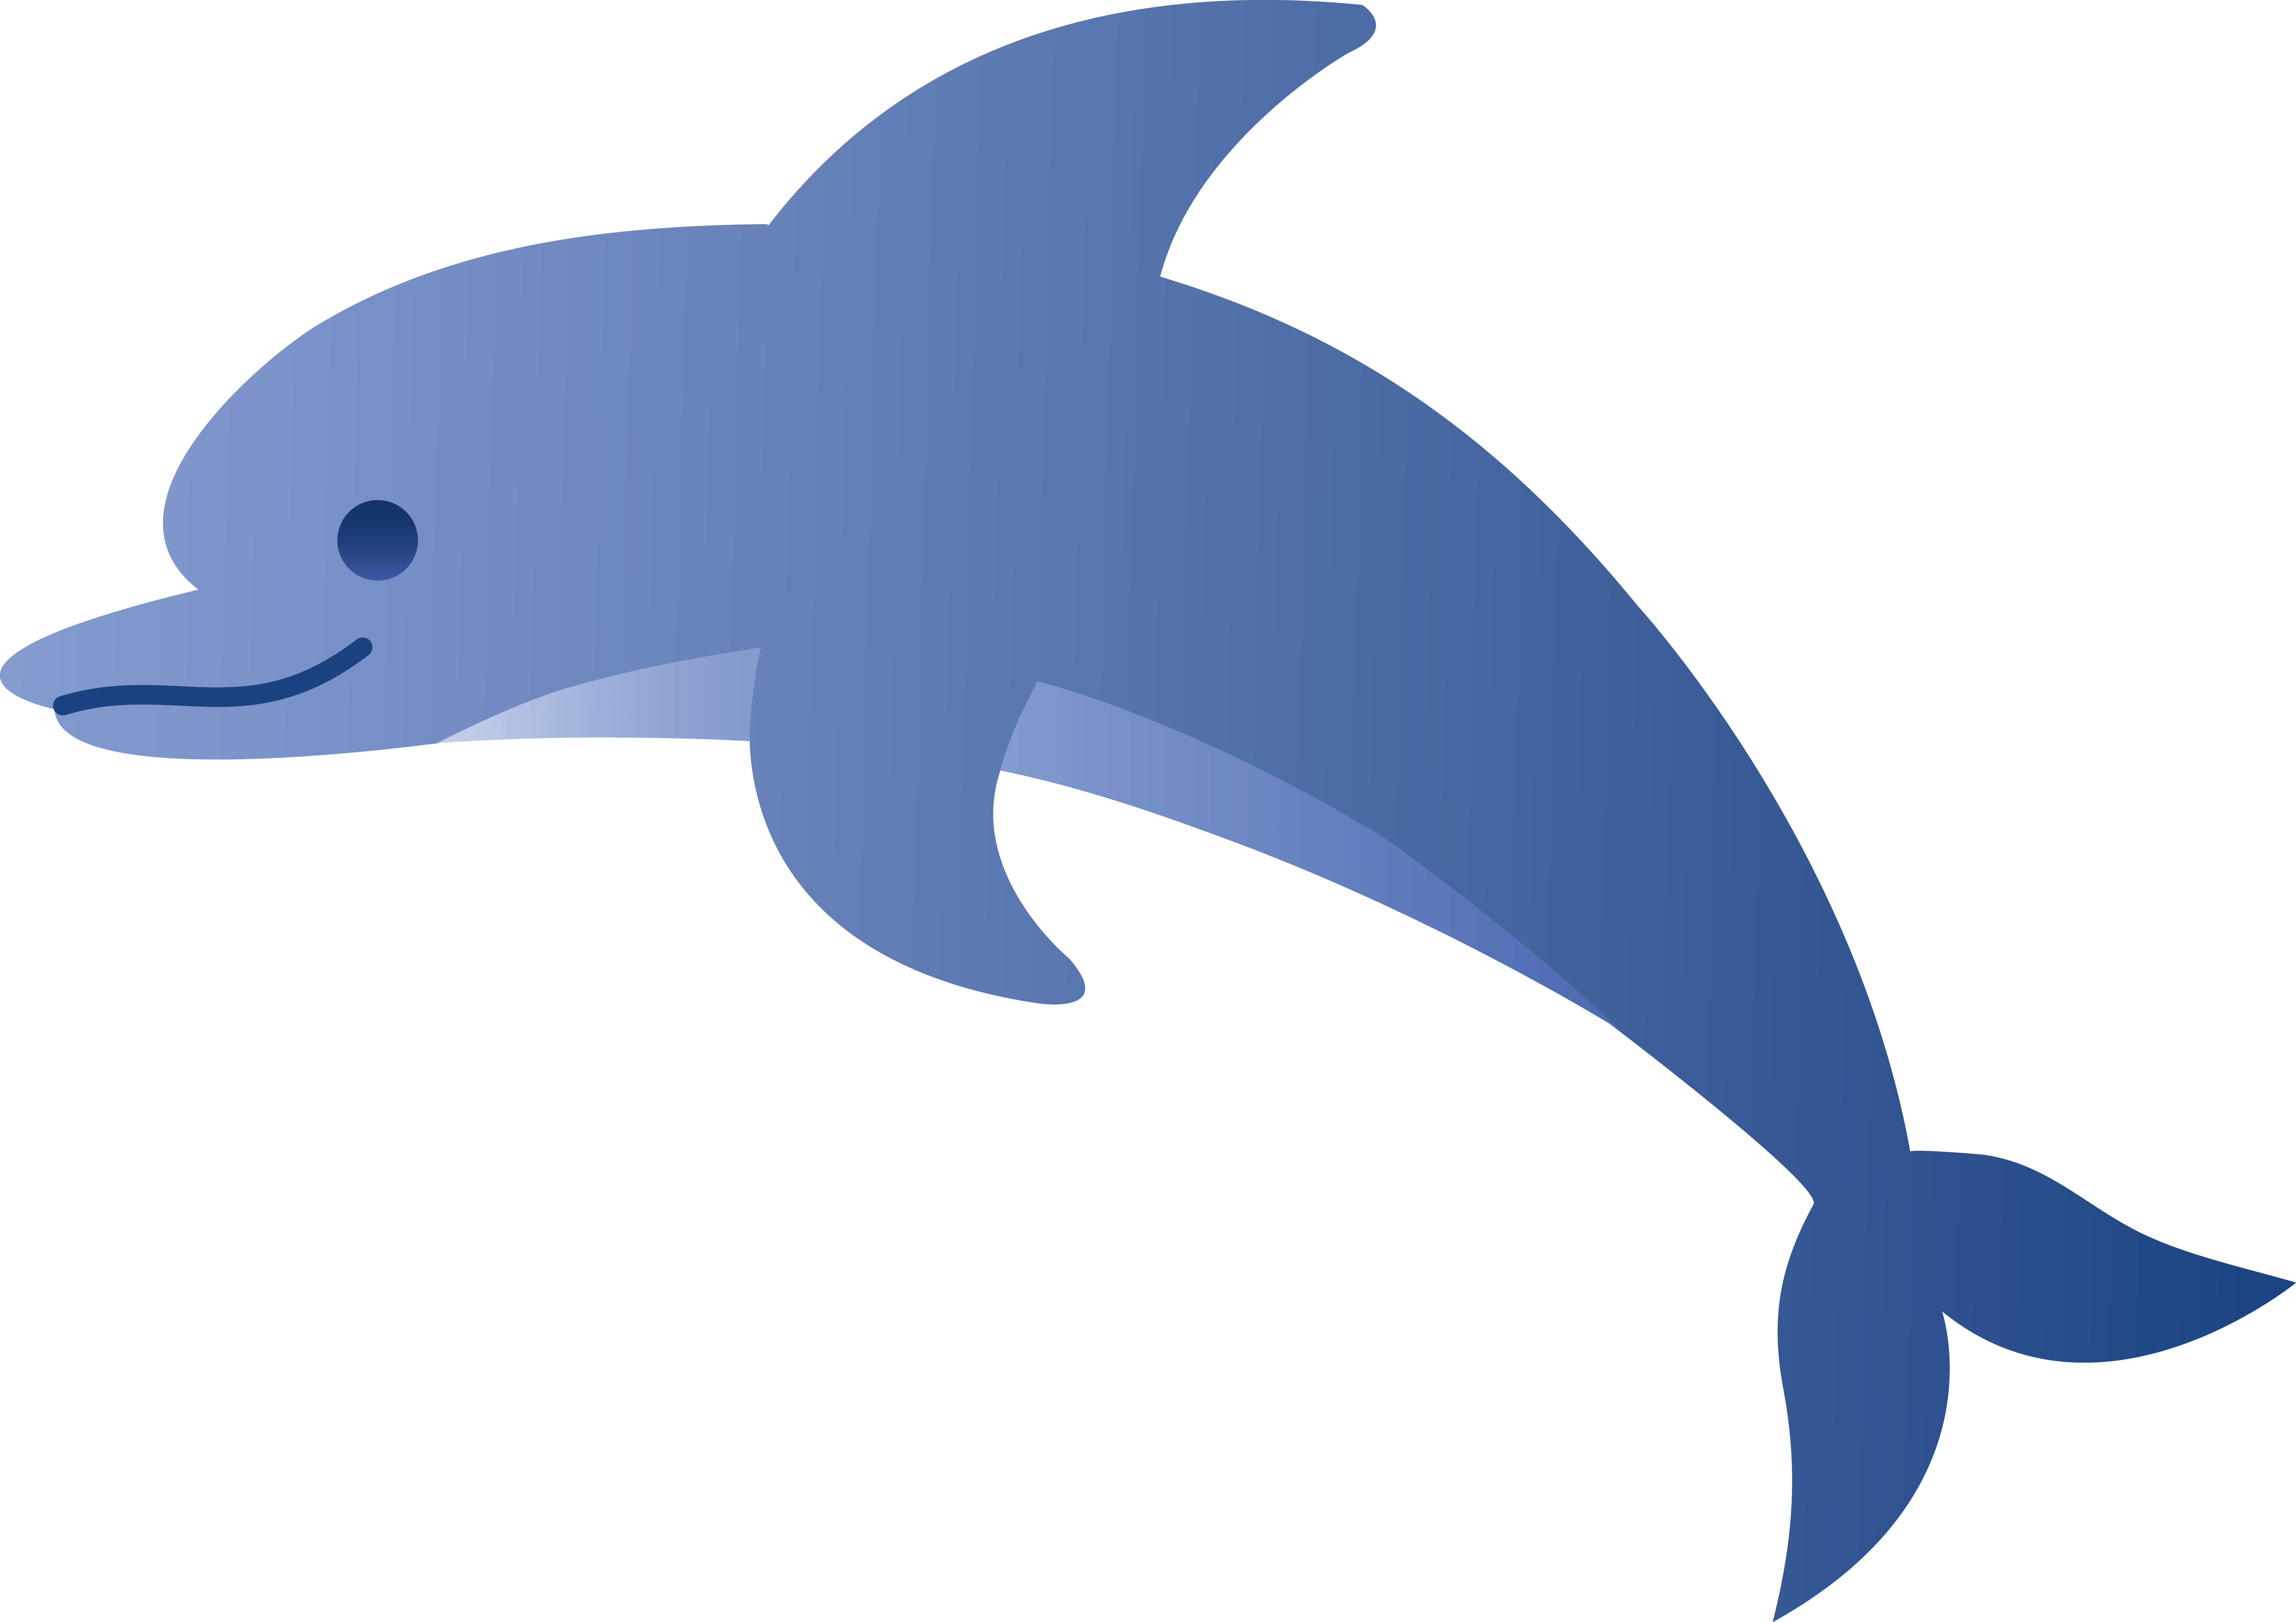 Er cliparts zone dolphin. Dolphins clipart red